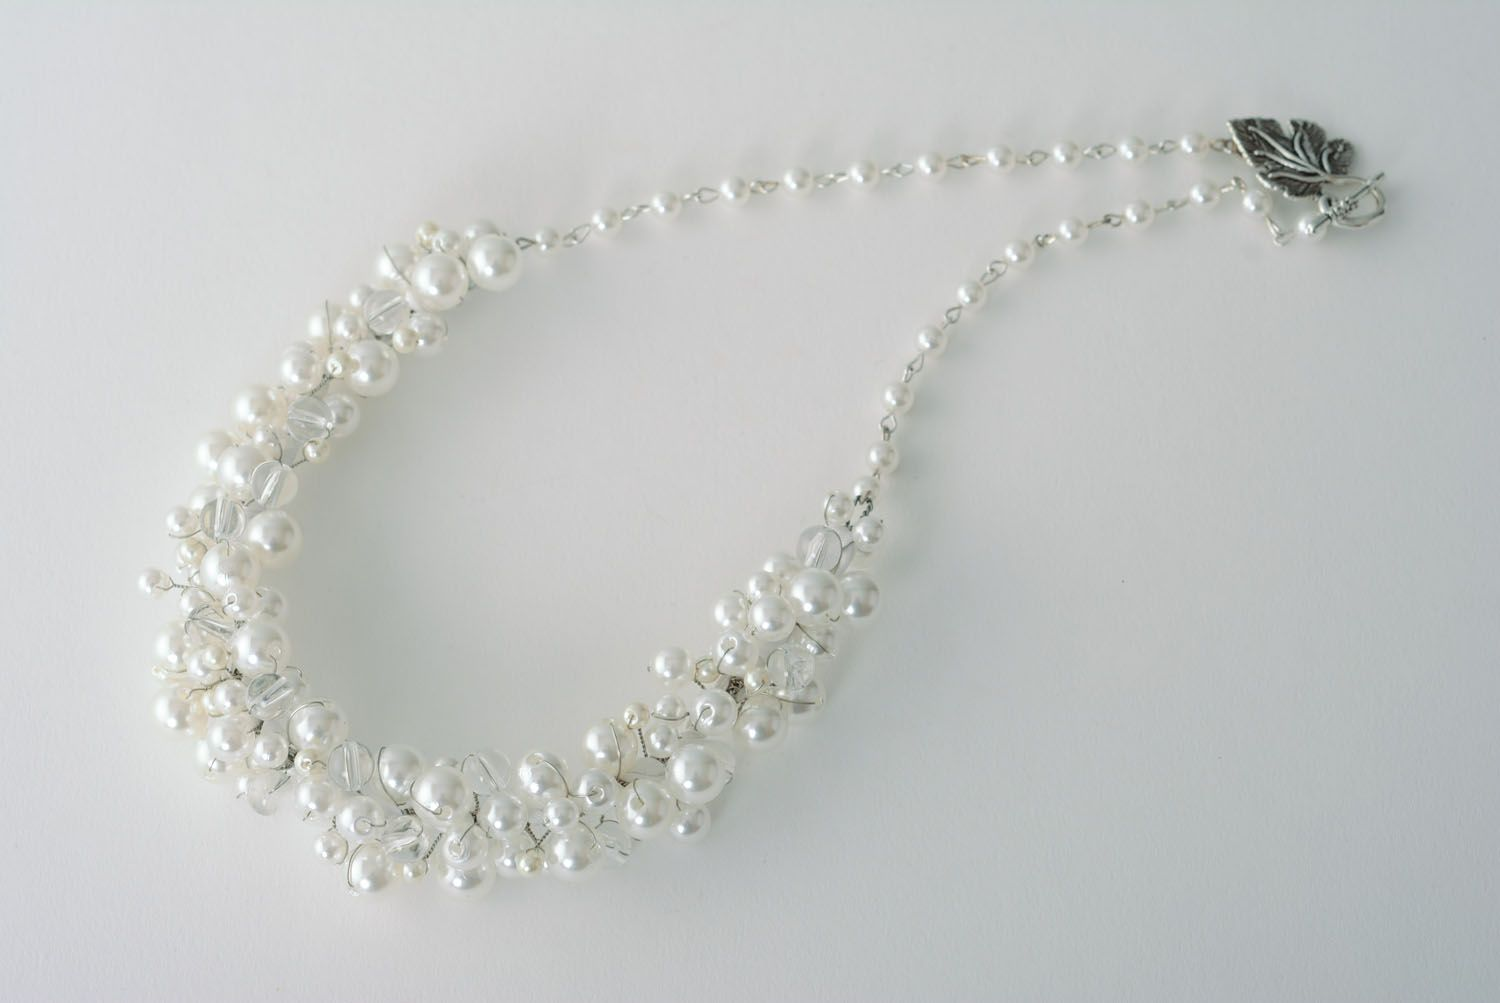 Necklace with pearl-like beads photo 3